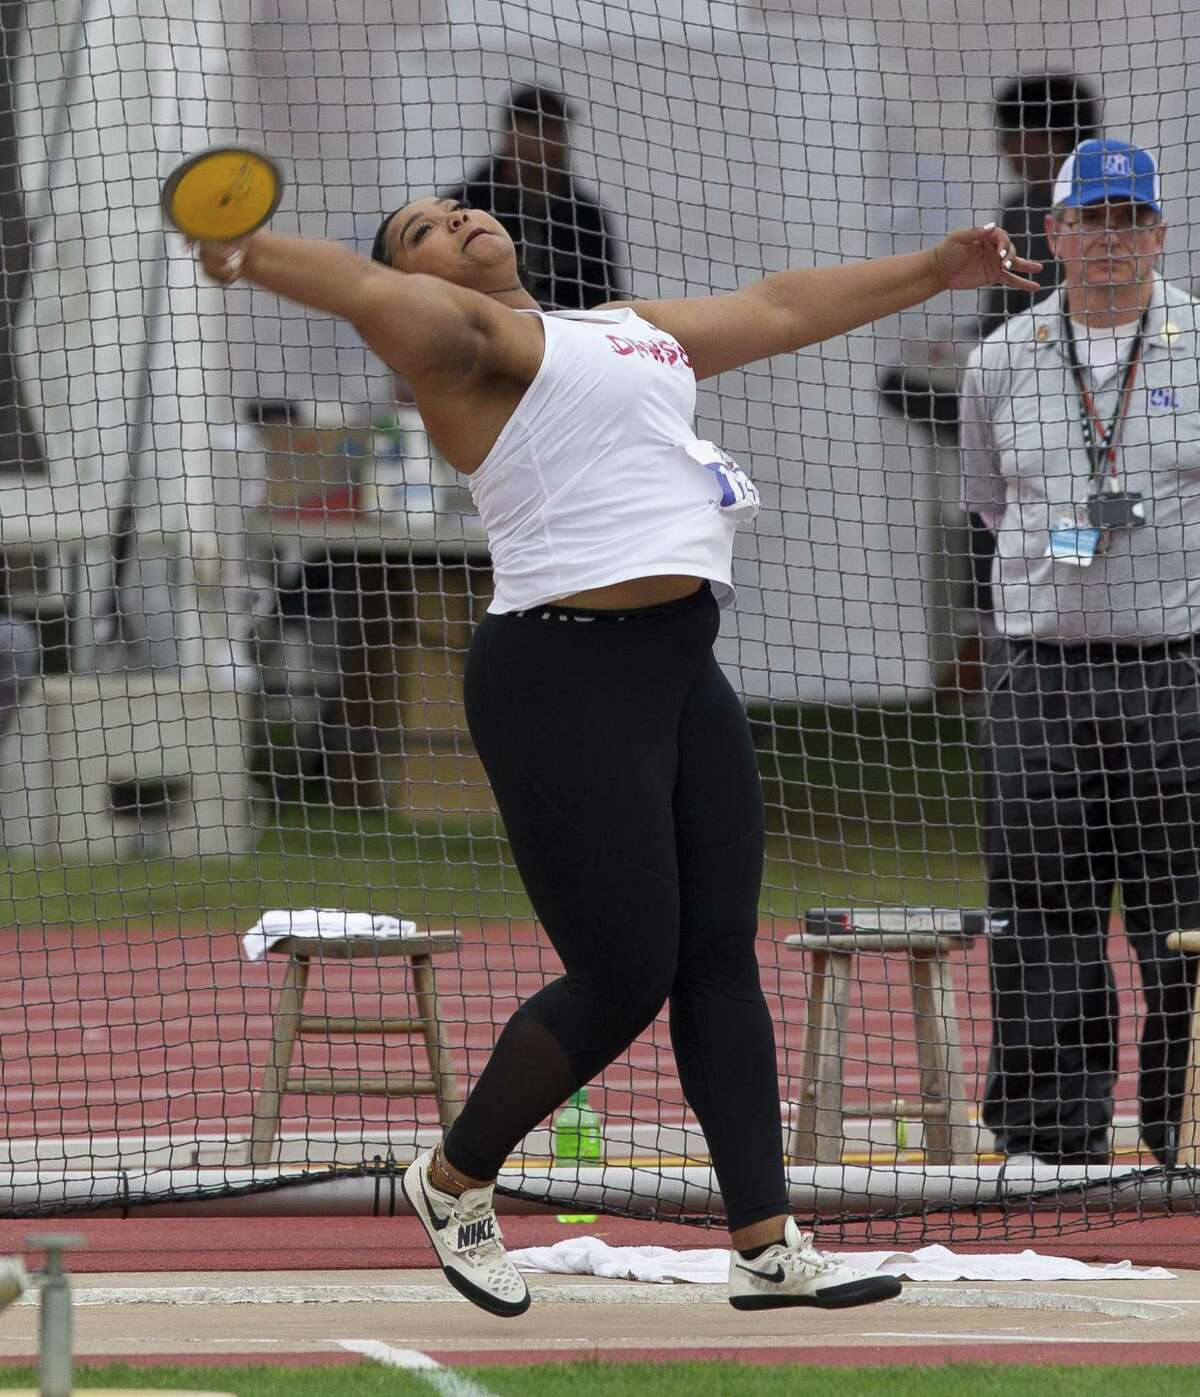 Chrystal Herpin of Pearland Dawson finished third in the discus at the UIL state track and field championships with a throw of 146 feet, 11 inches.